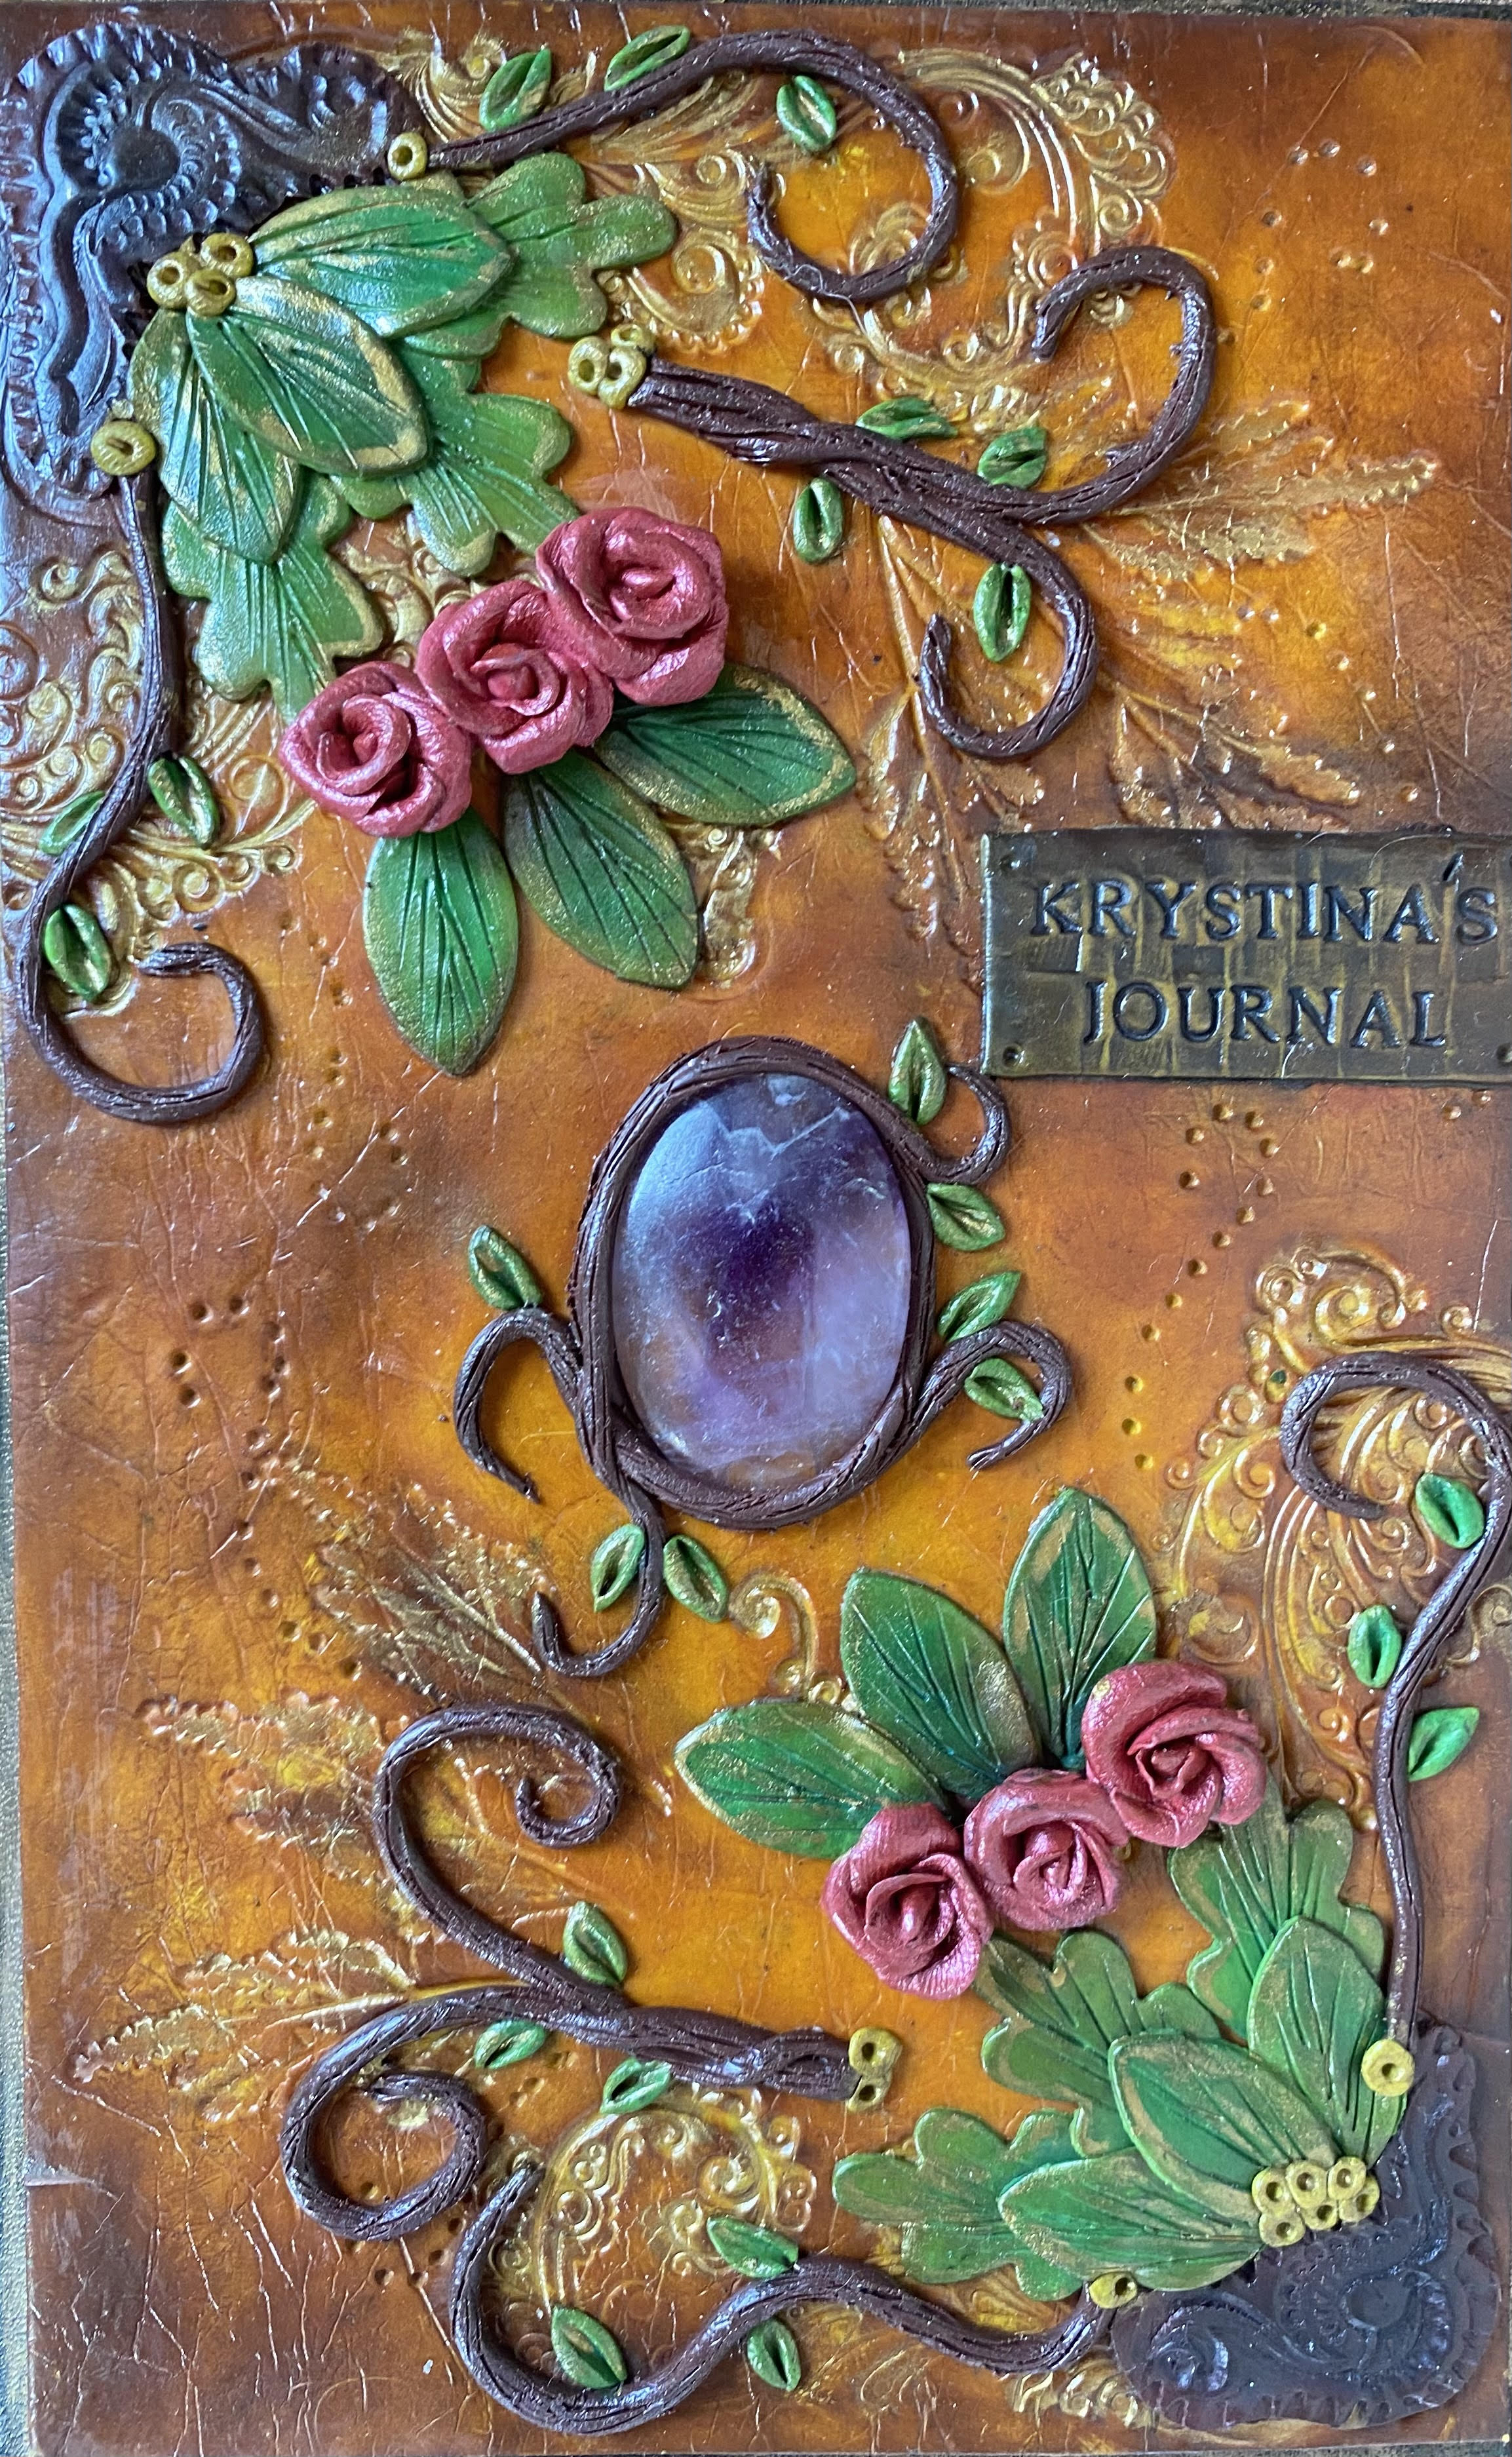 Welcome to my Journal